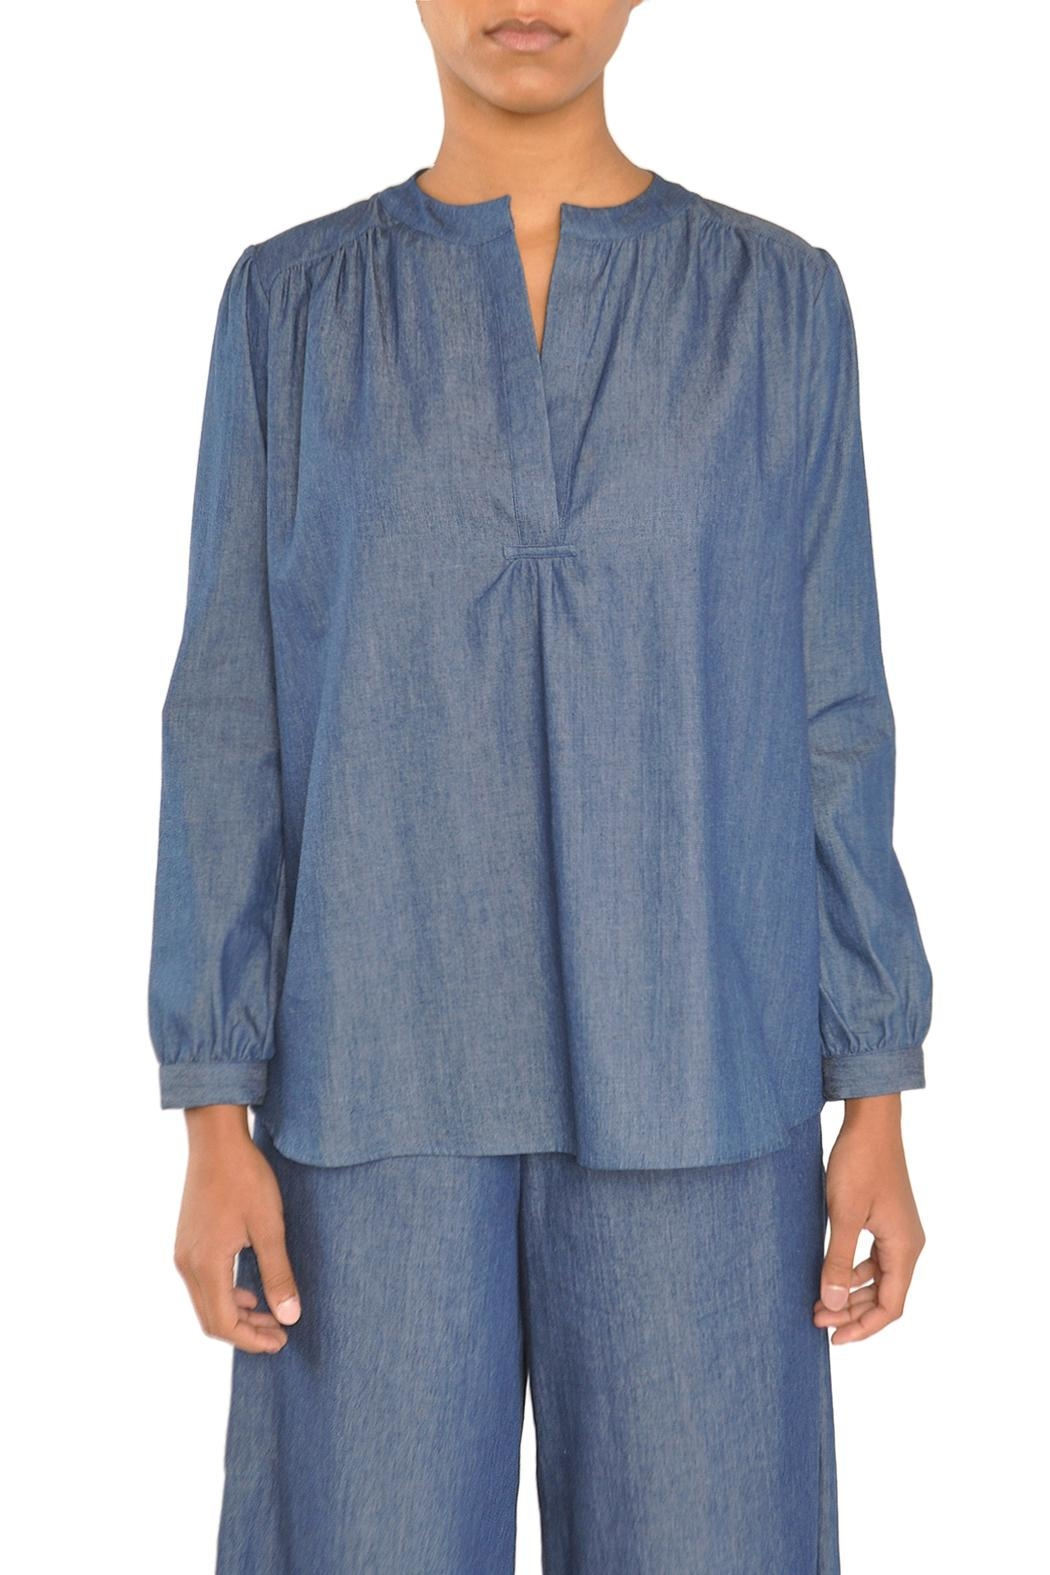 TYLHO Chambray Henley Shirt - Front Cropped Image